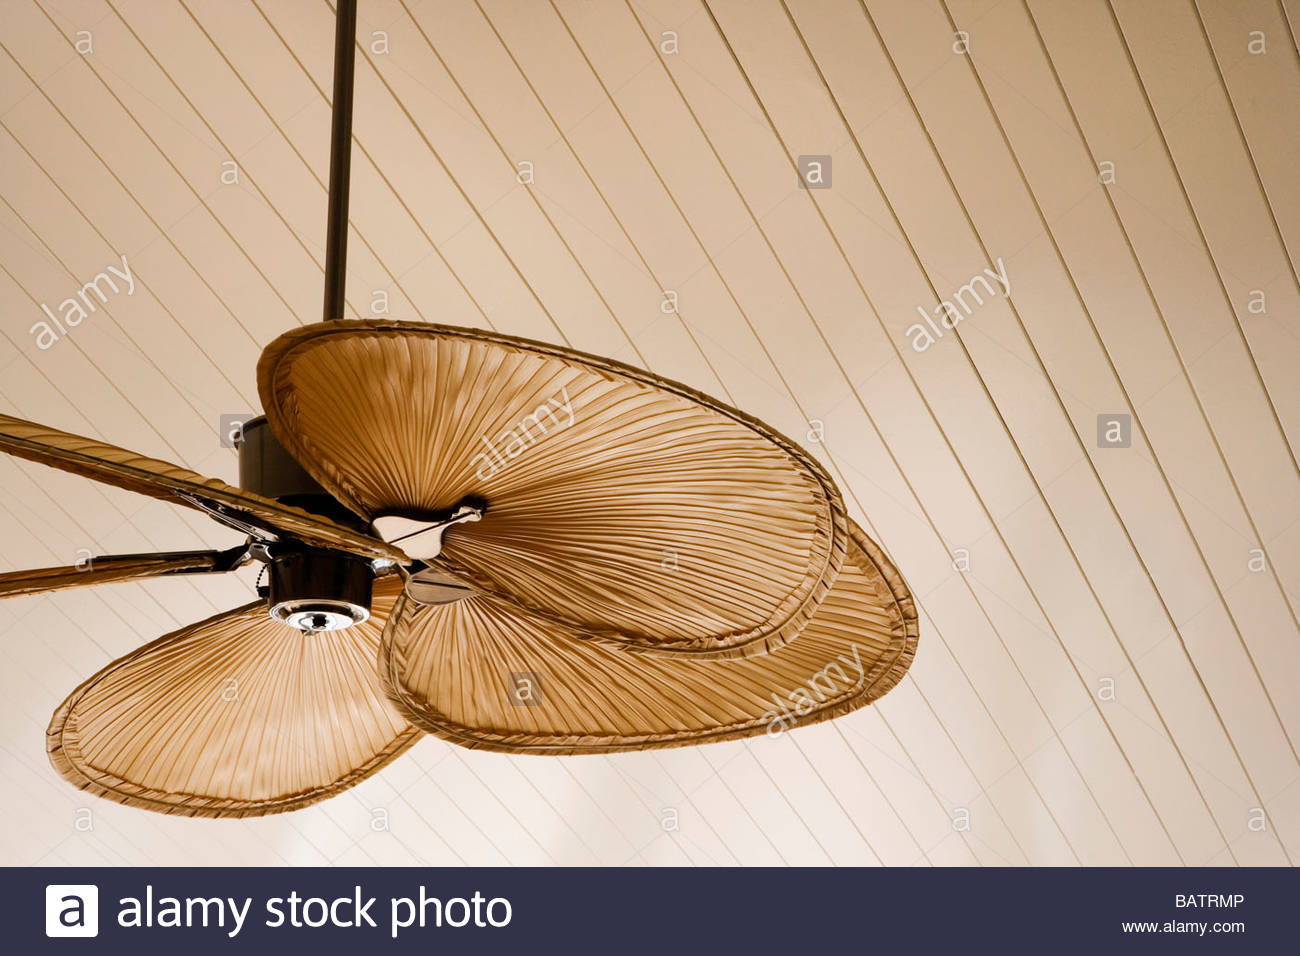 detail of beach style ceiling fan stock photo: 23902390 - alamy